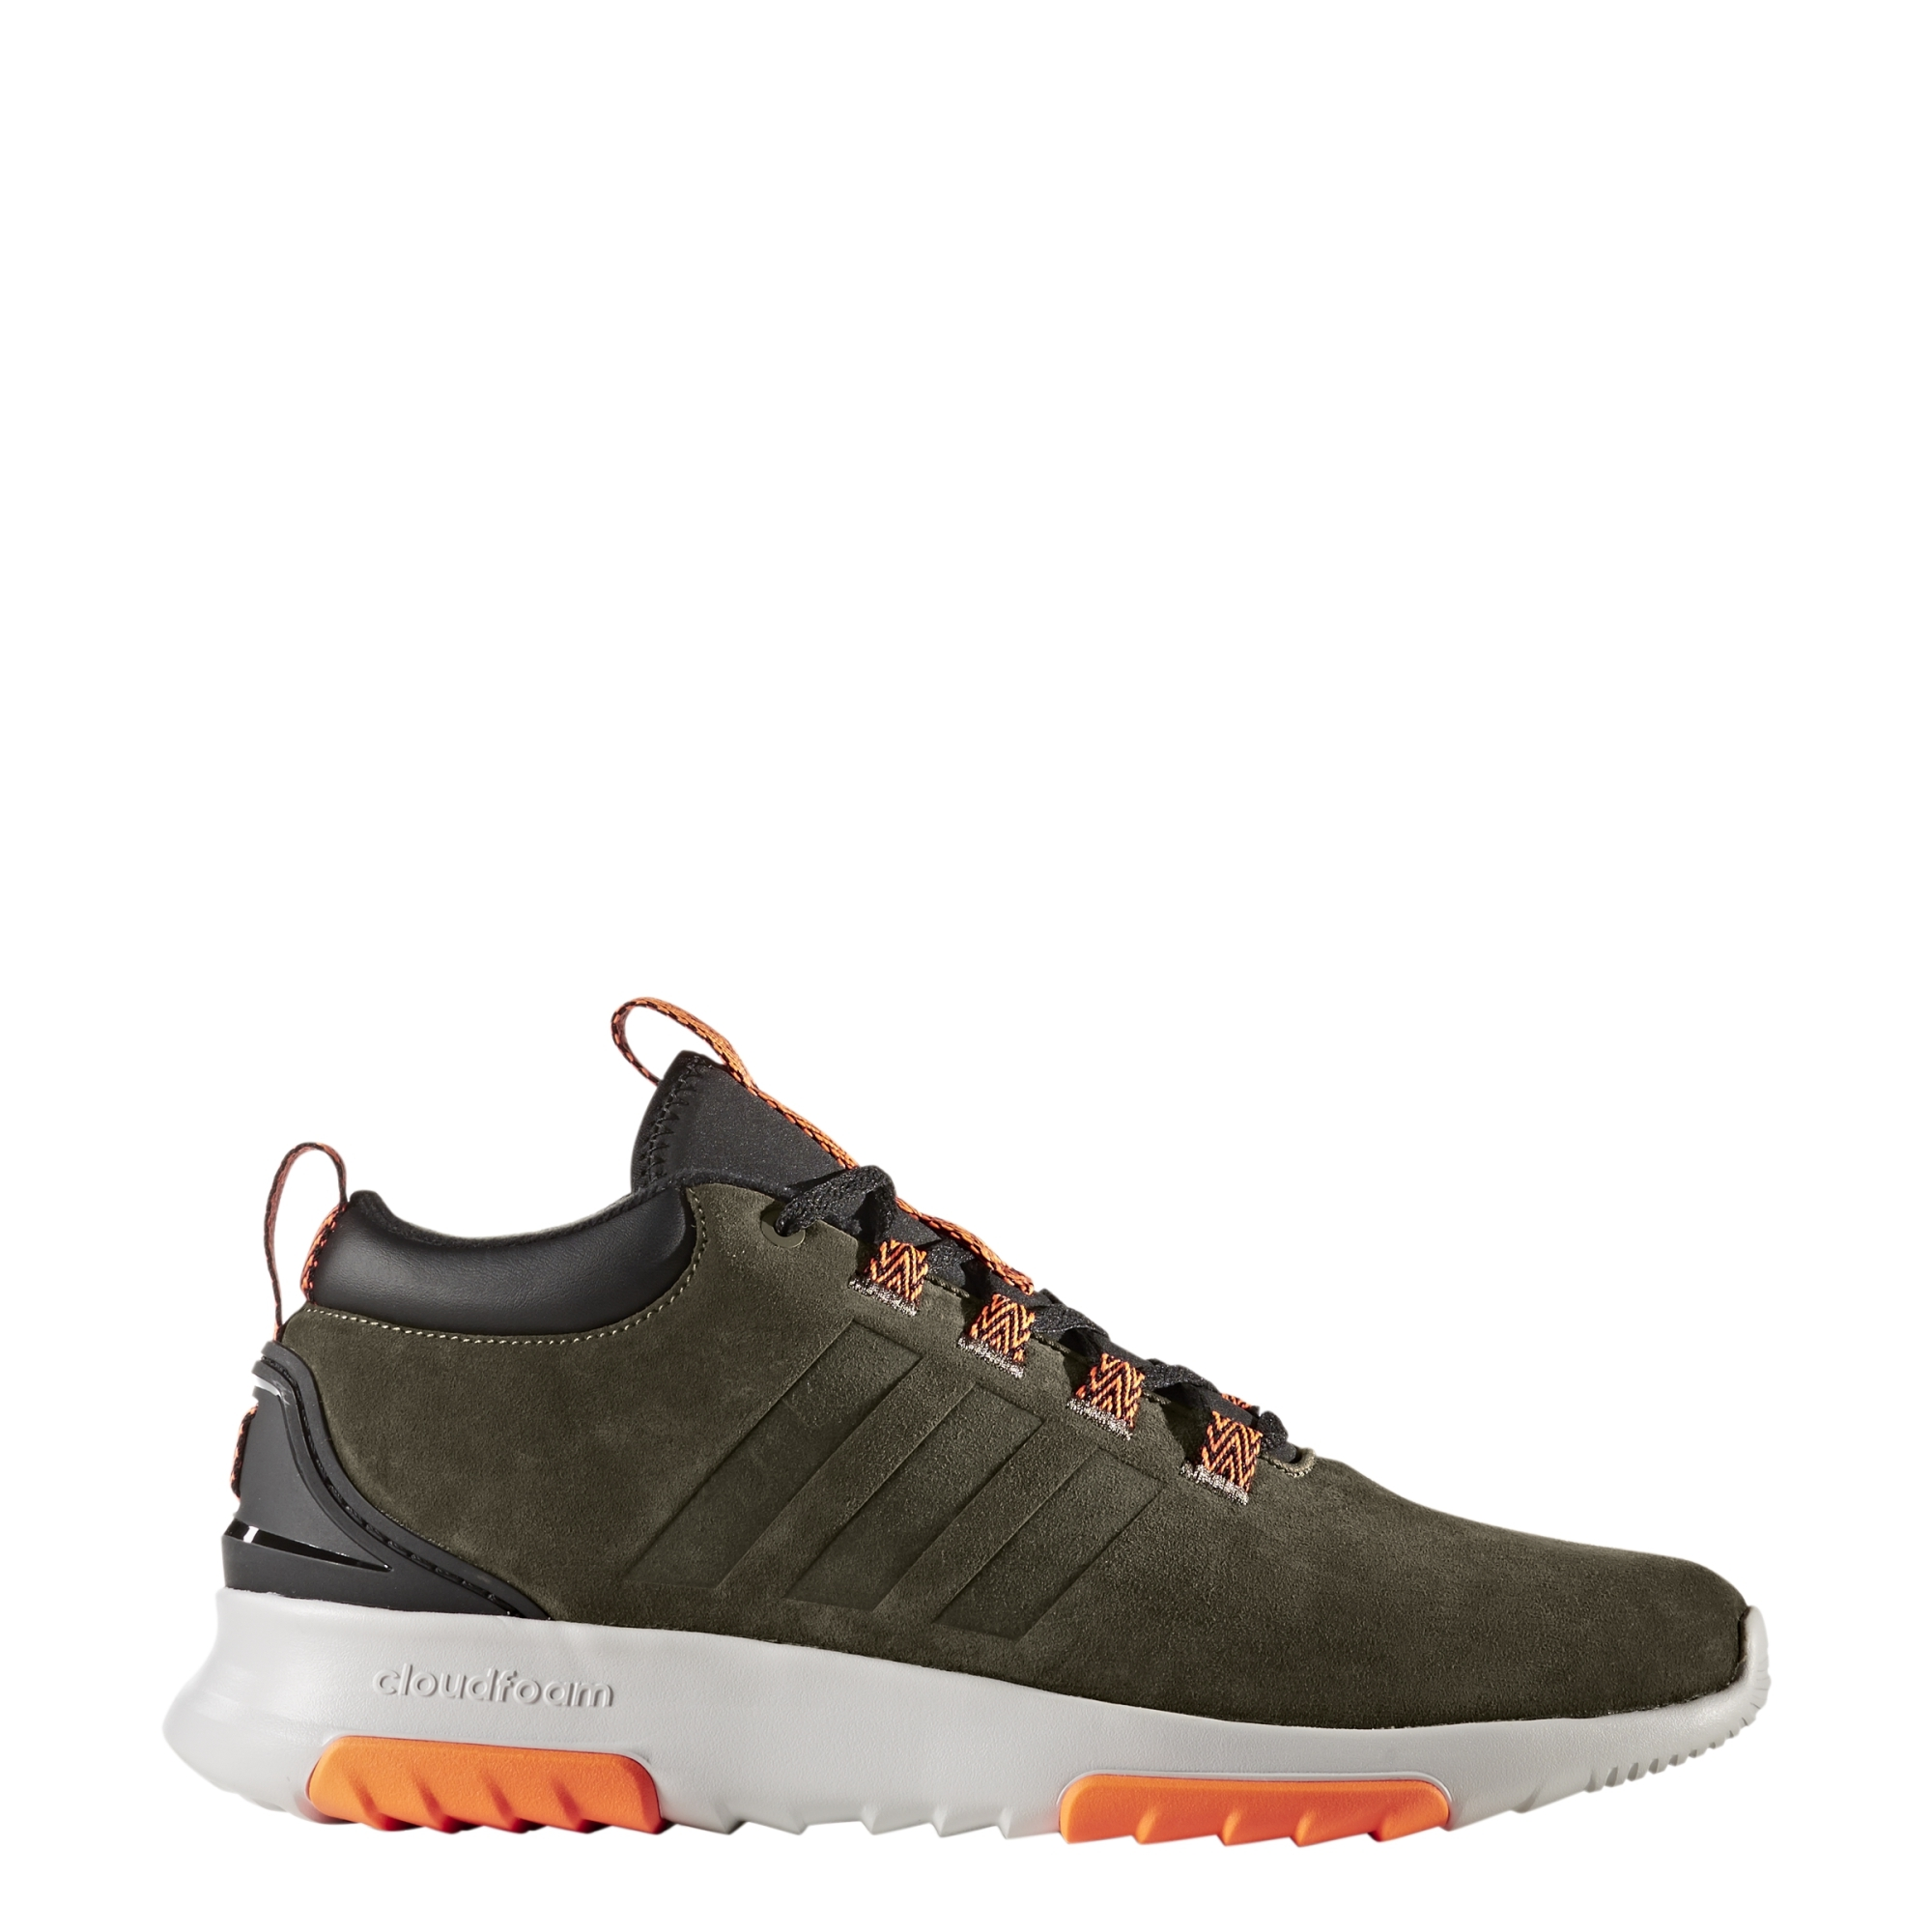 adidas CLOUDFOAM RACER WINTER MID topánky  18d389a4124